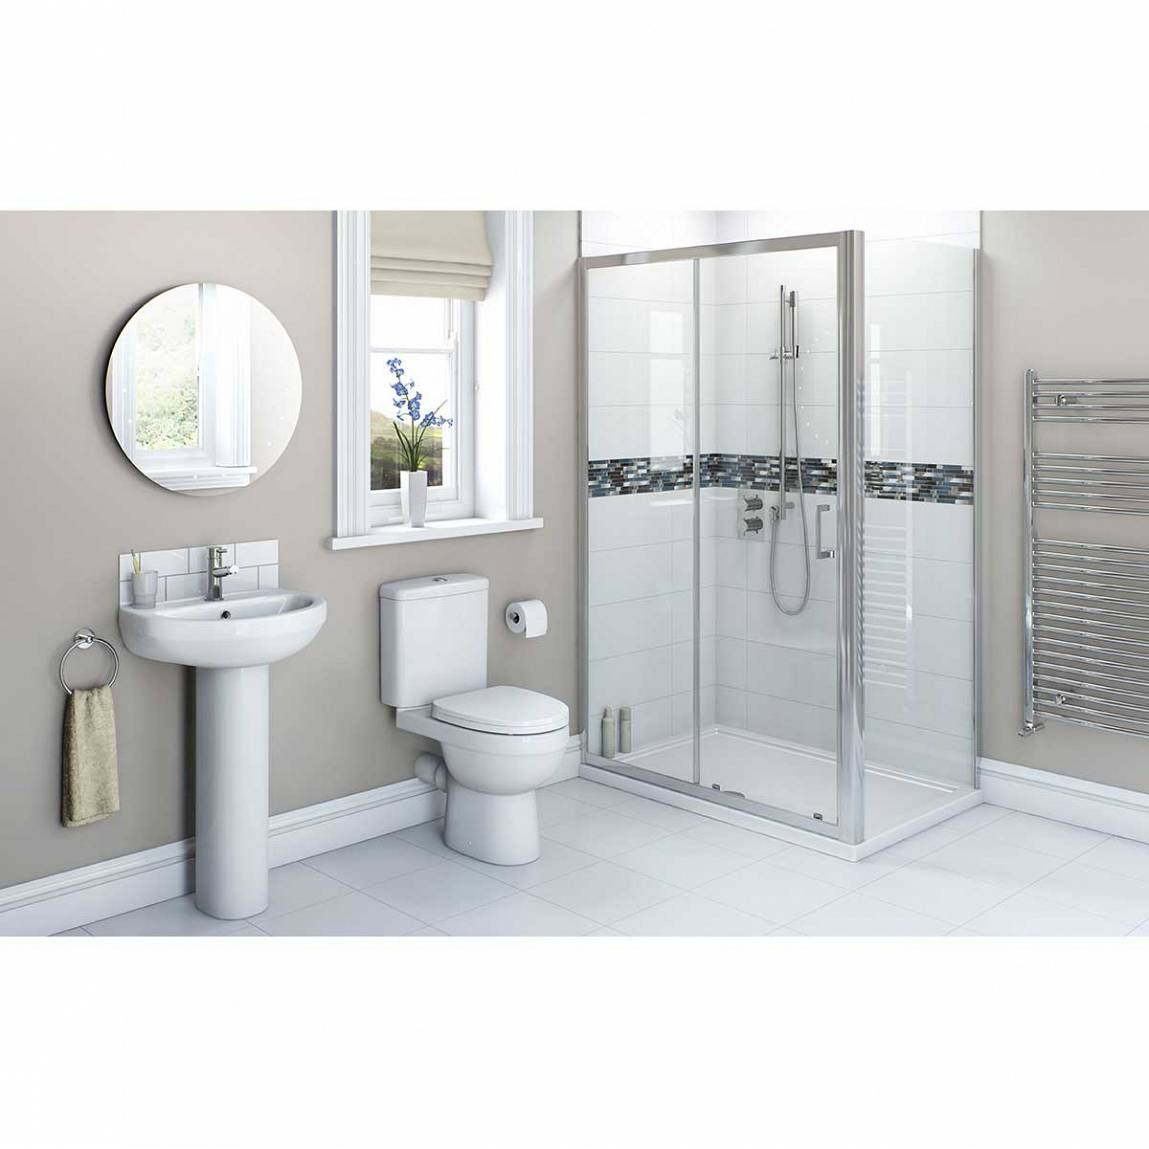 Image of Energy Bathroom set with 1100x760 Sliding Enclosure